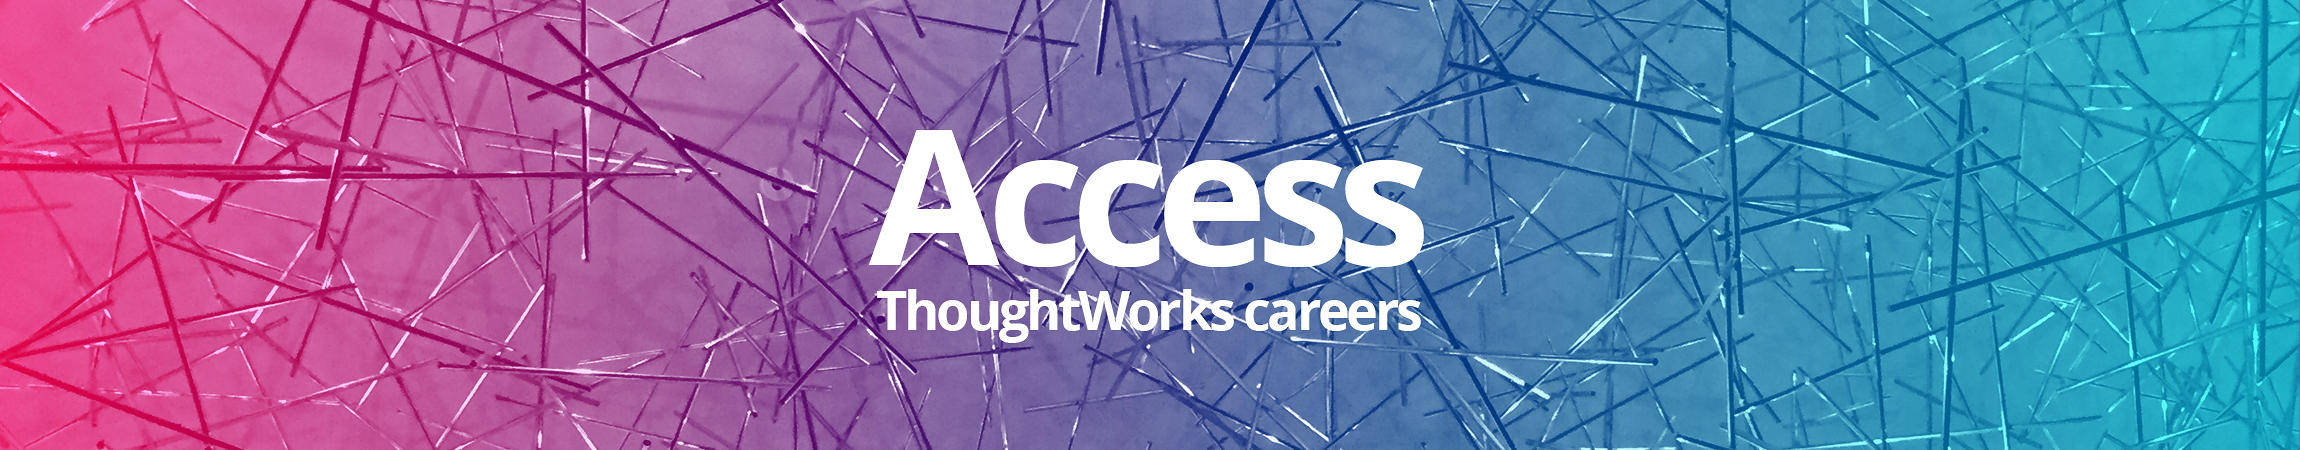 Access ThoughtWorks Careers